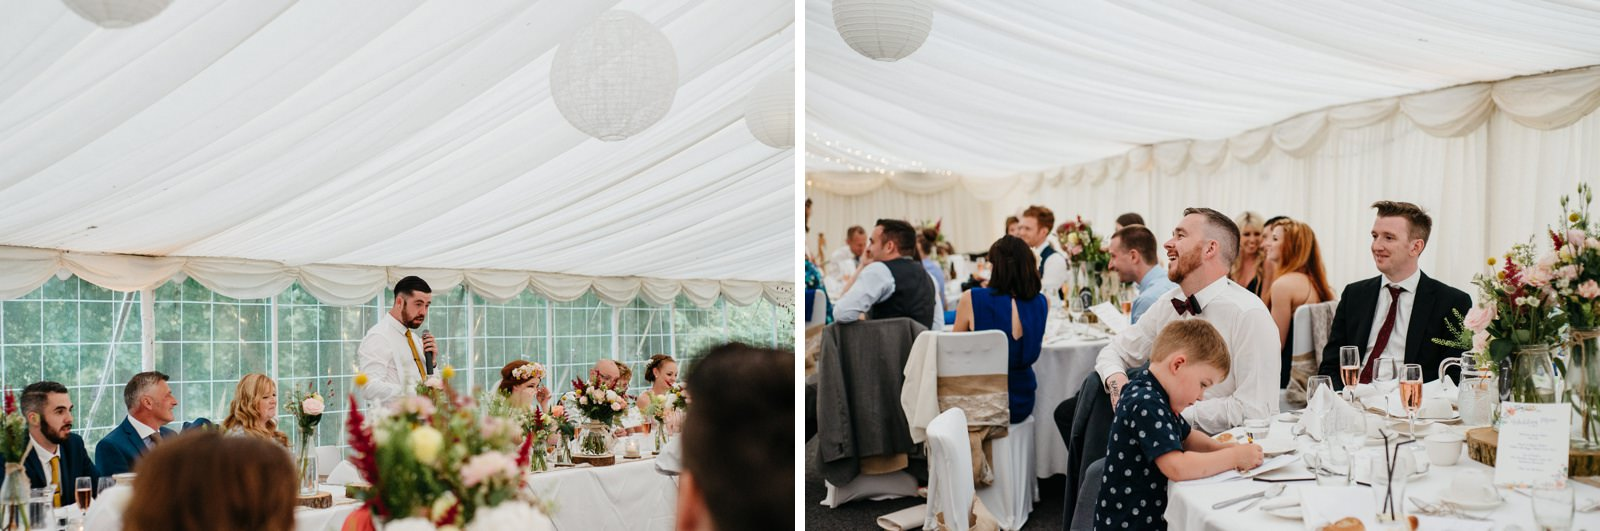 families during speeches at Ayrshire wedding